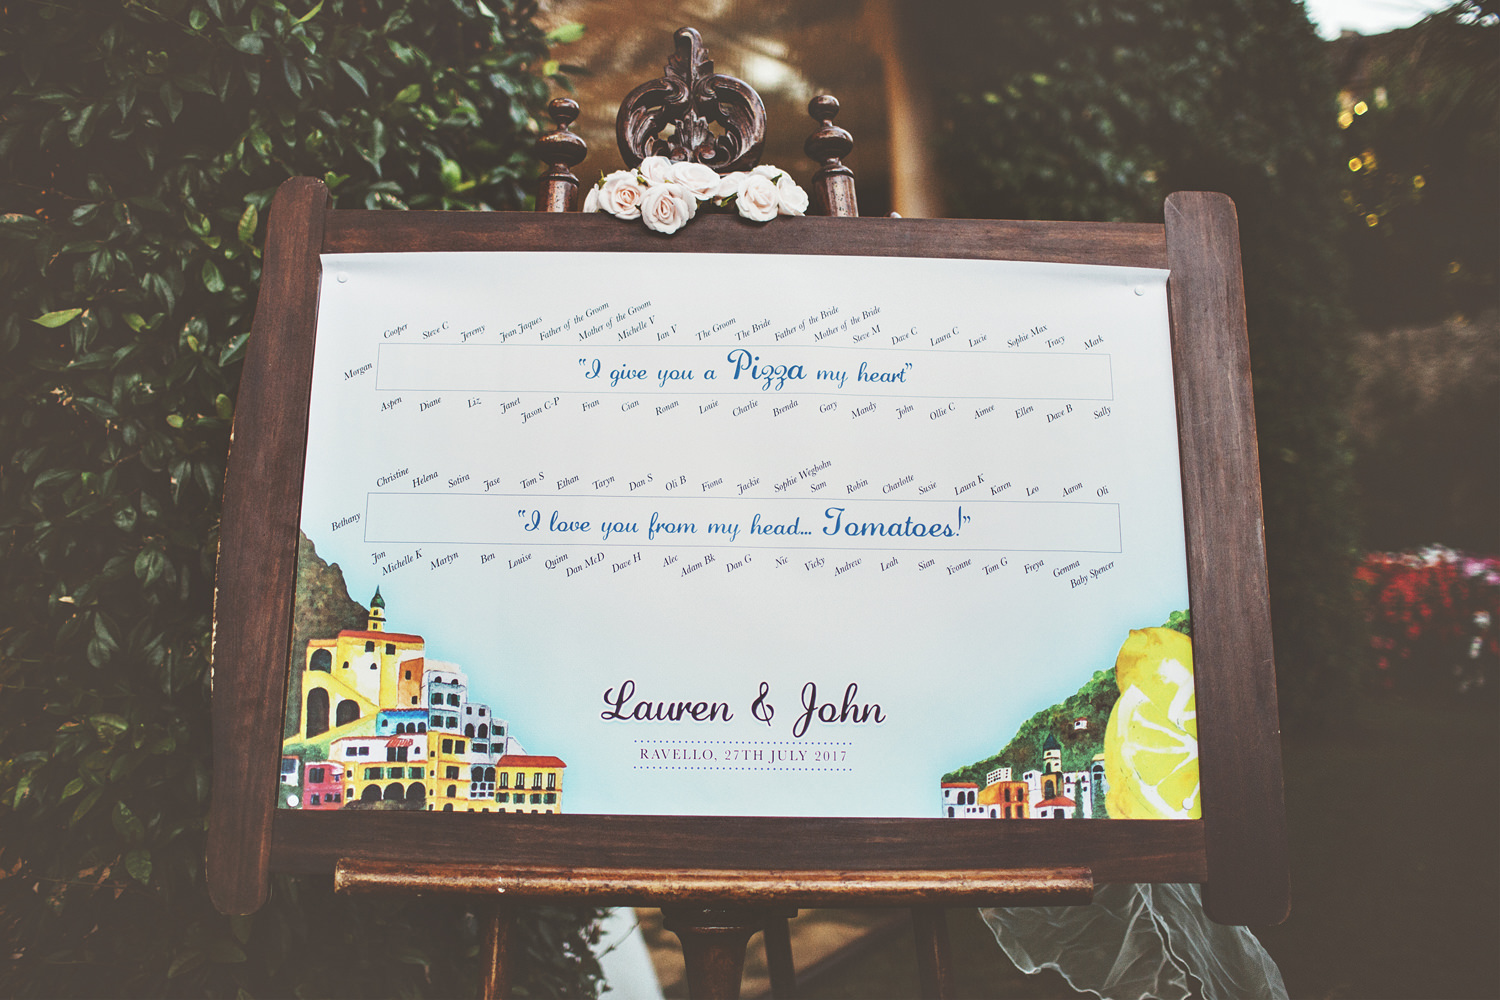 The wedidng stationery was handpainted by the best man in bold colors and with an Italian feel